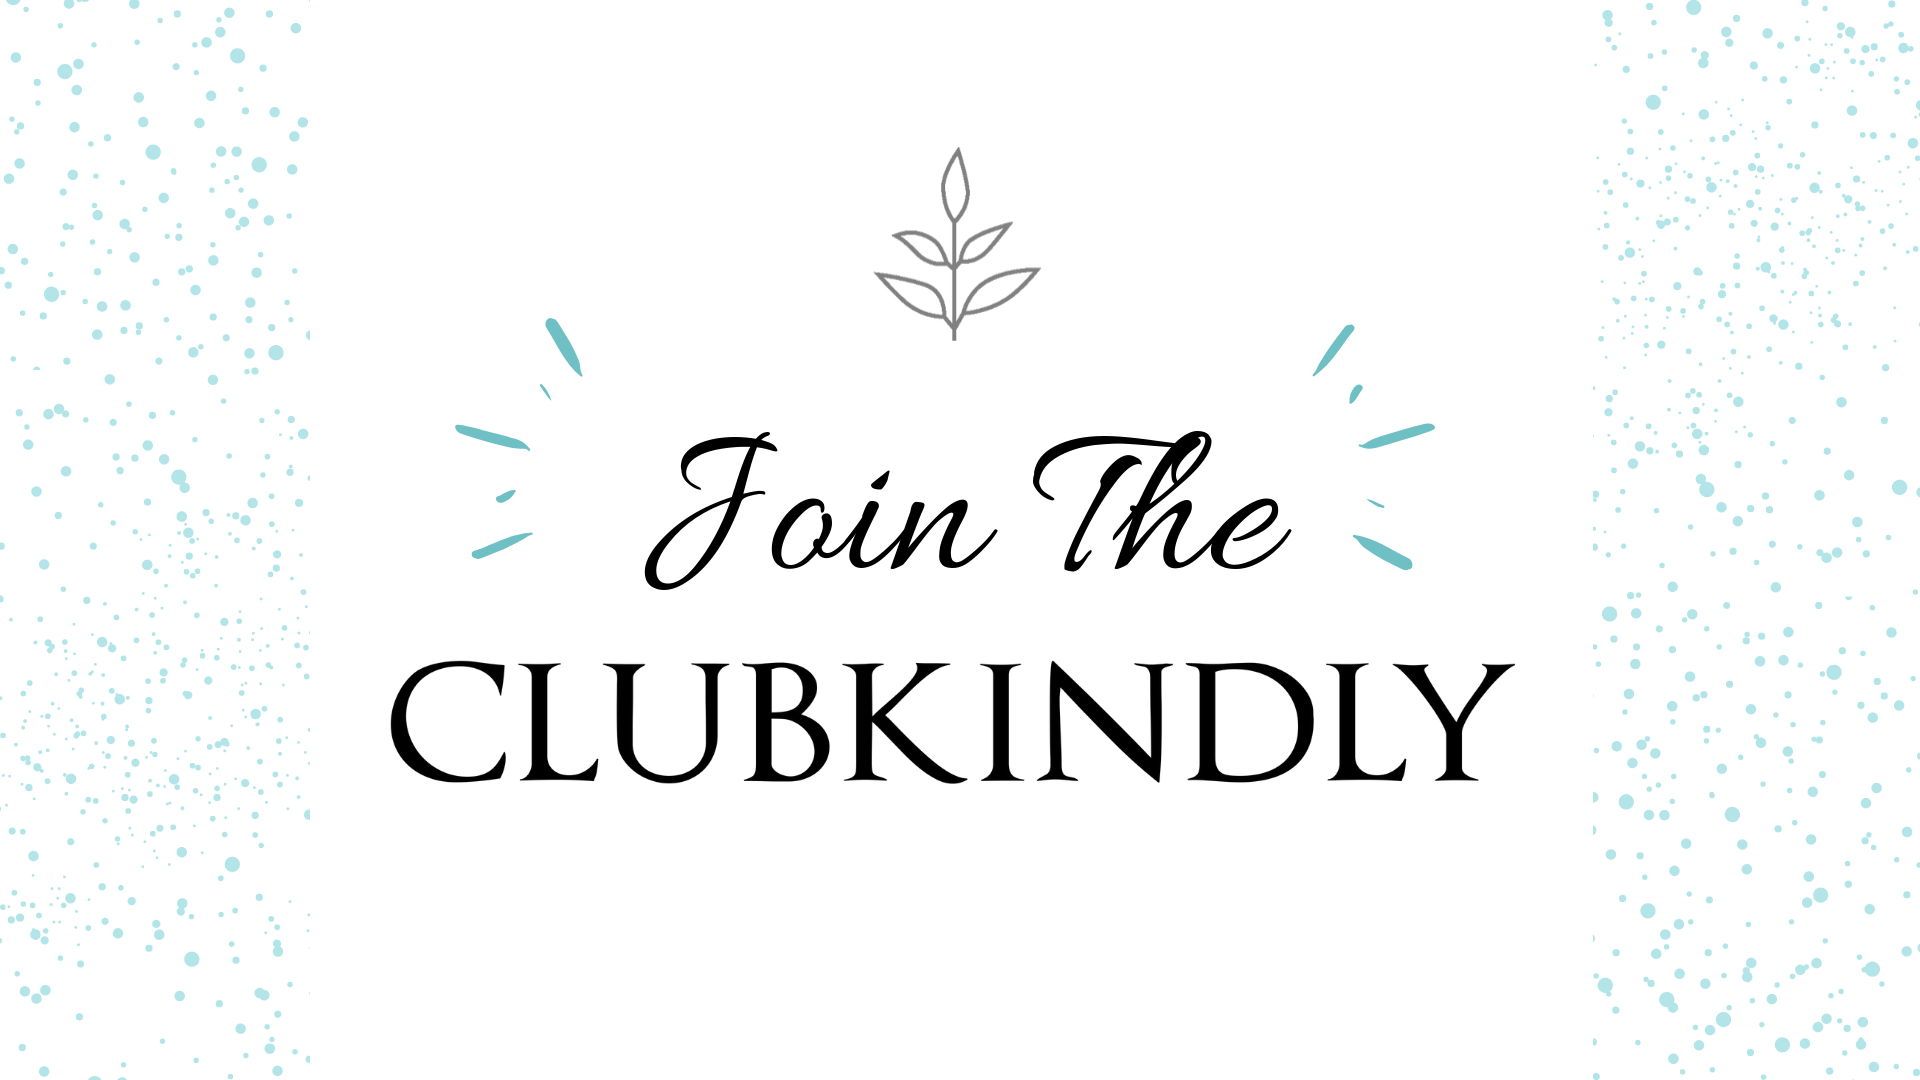 LIVEKINDLY Launches Plant-Based Community Membership Platform CLUBKINDLY